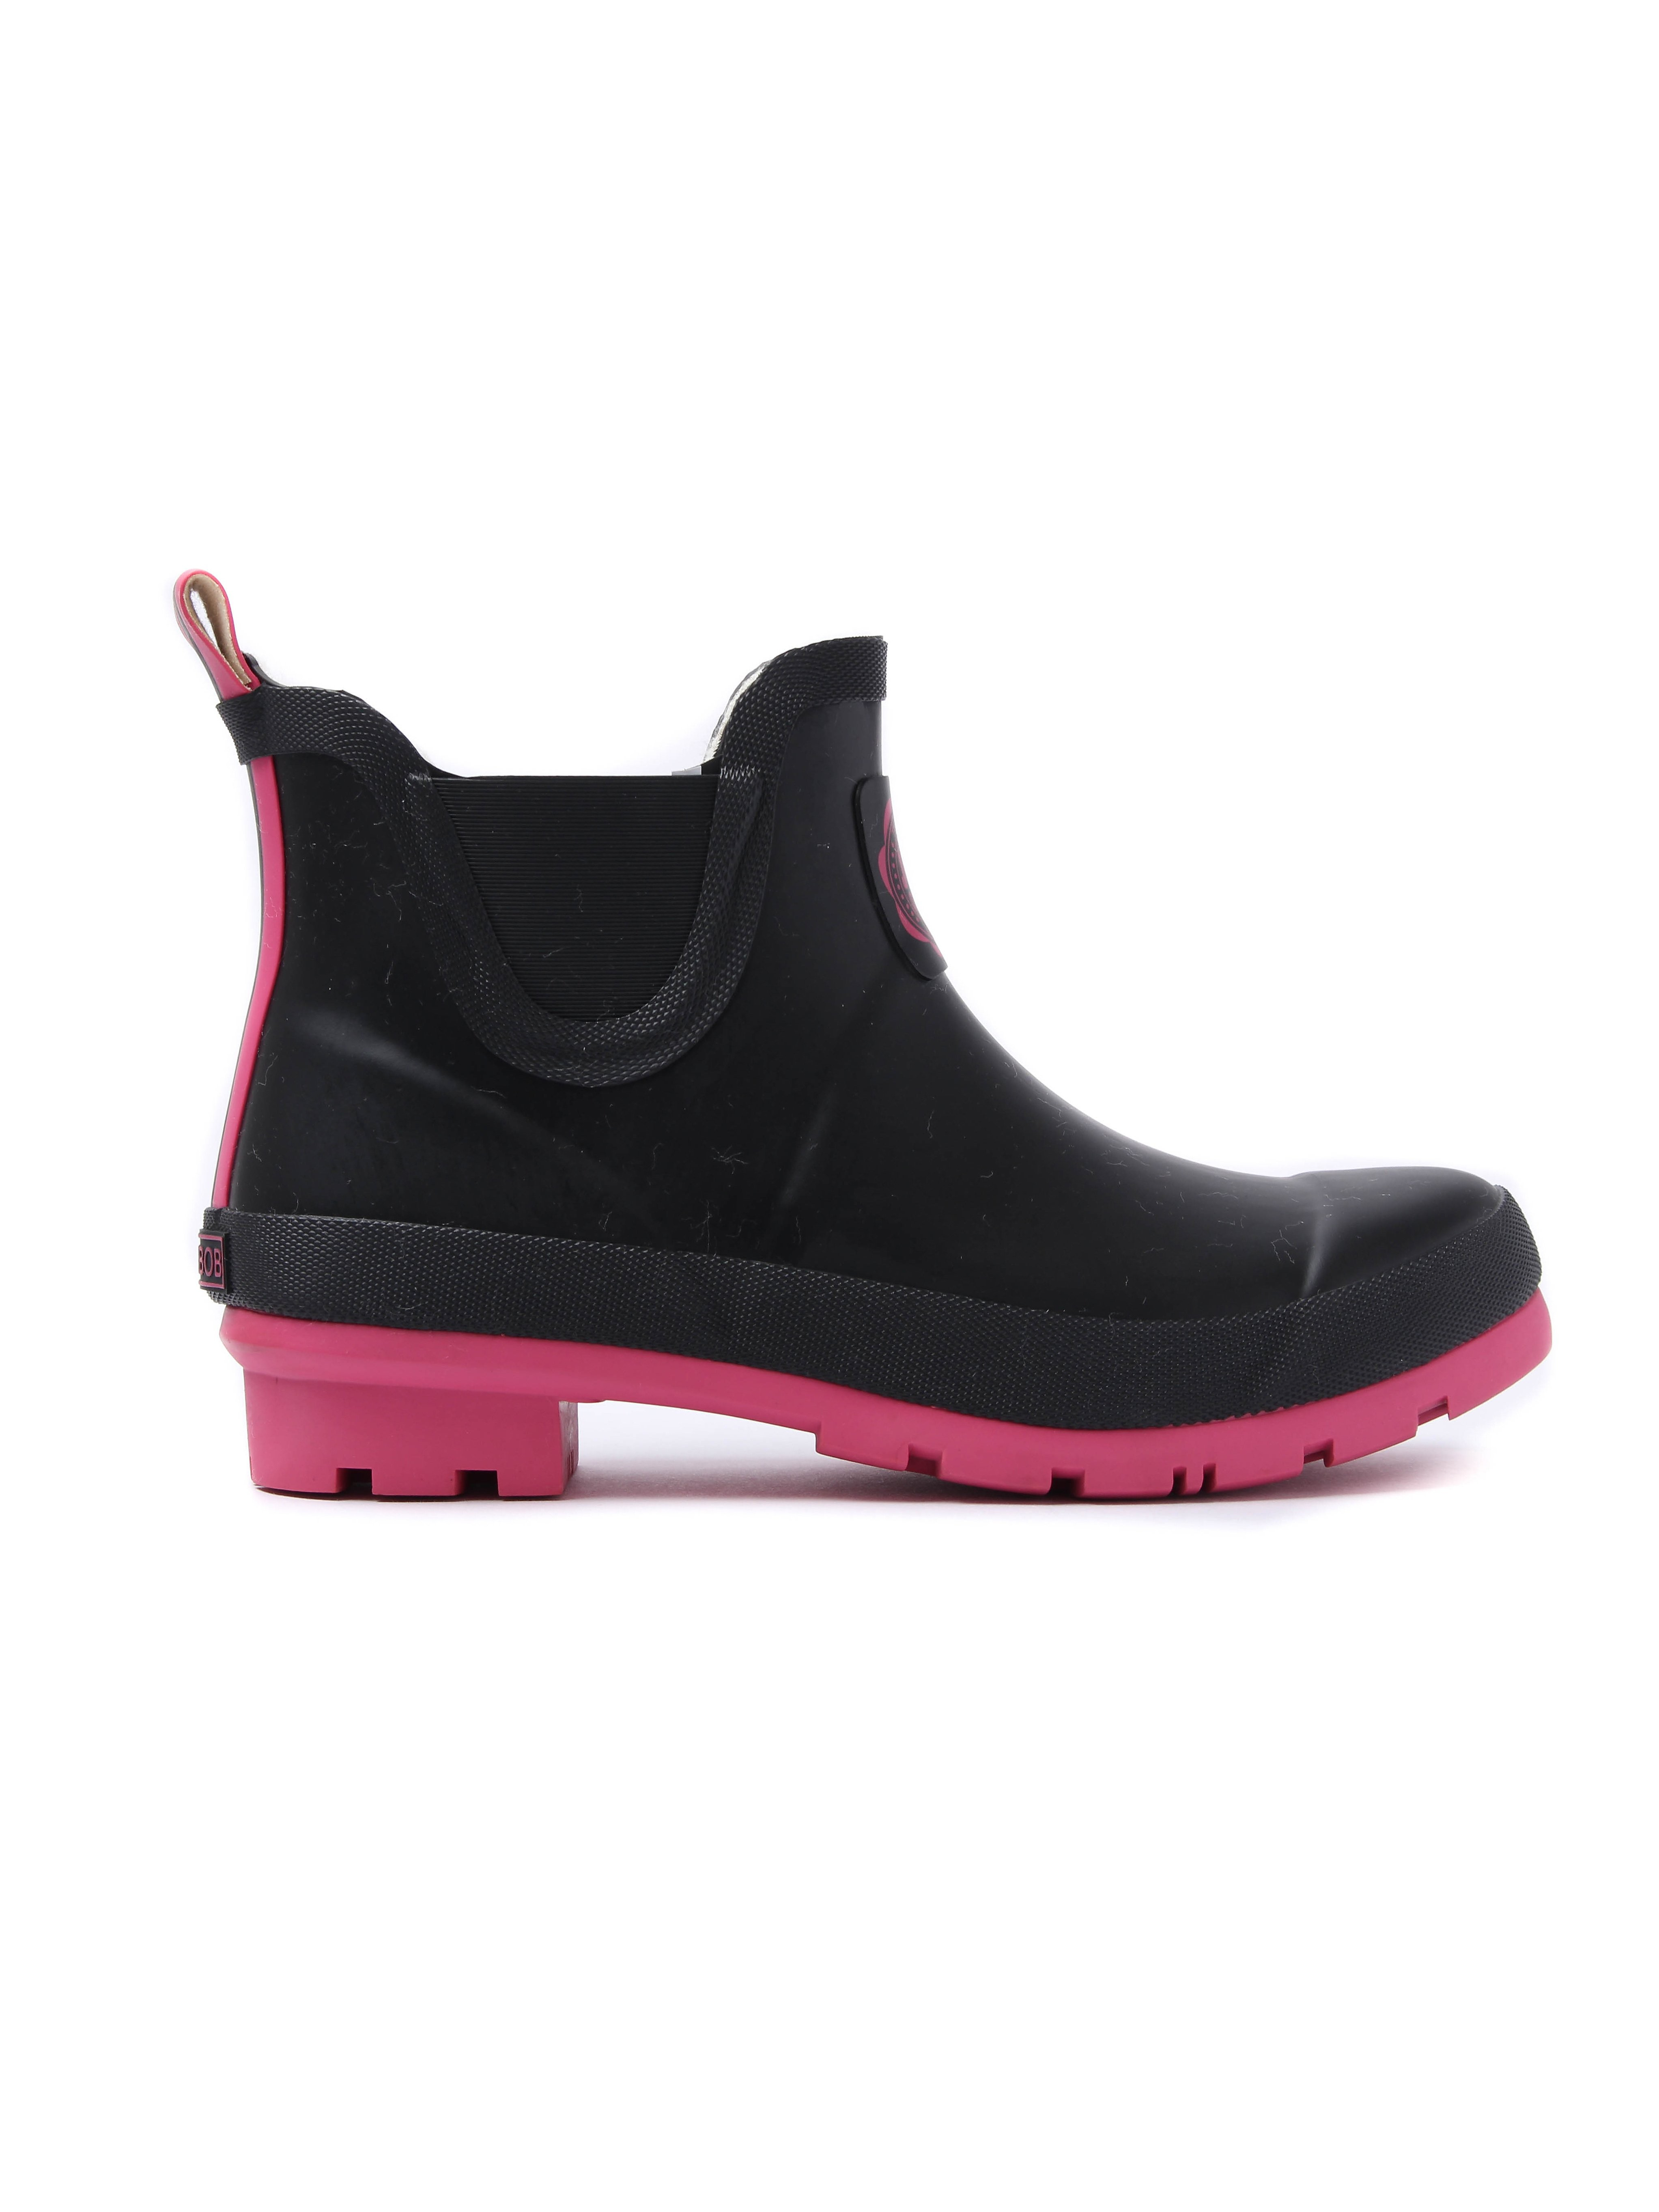 Joules Women's Wellibob Rubber Ankle Wellington Boots - Black & Cerise Pink